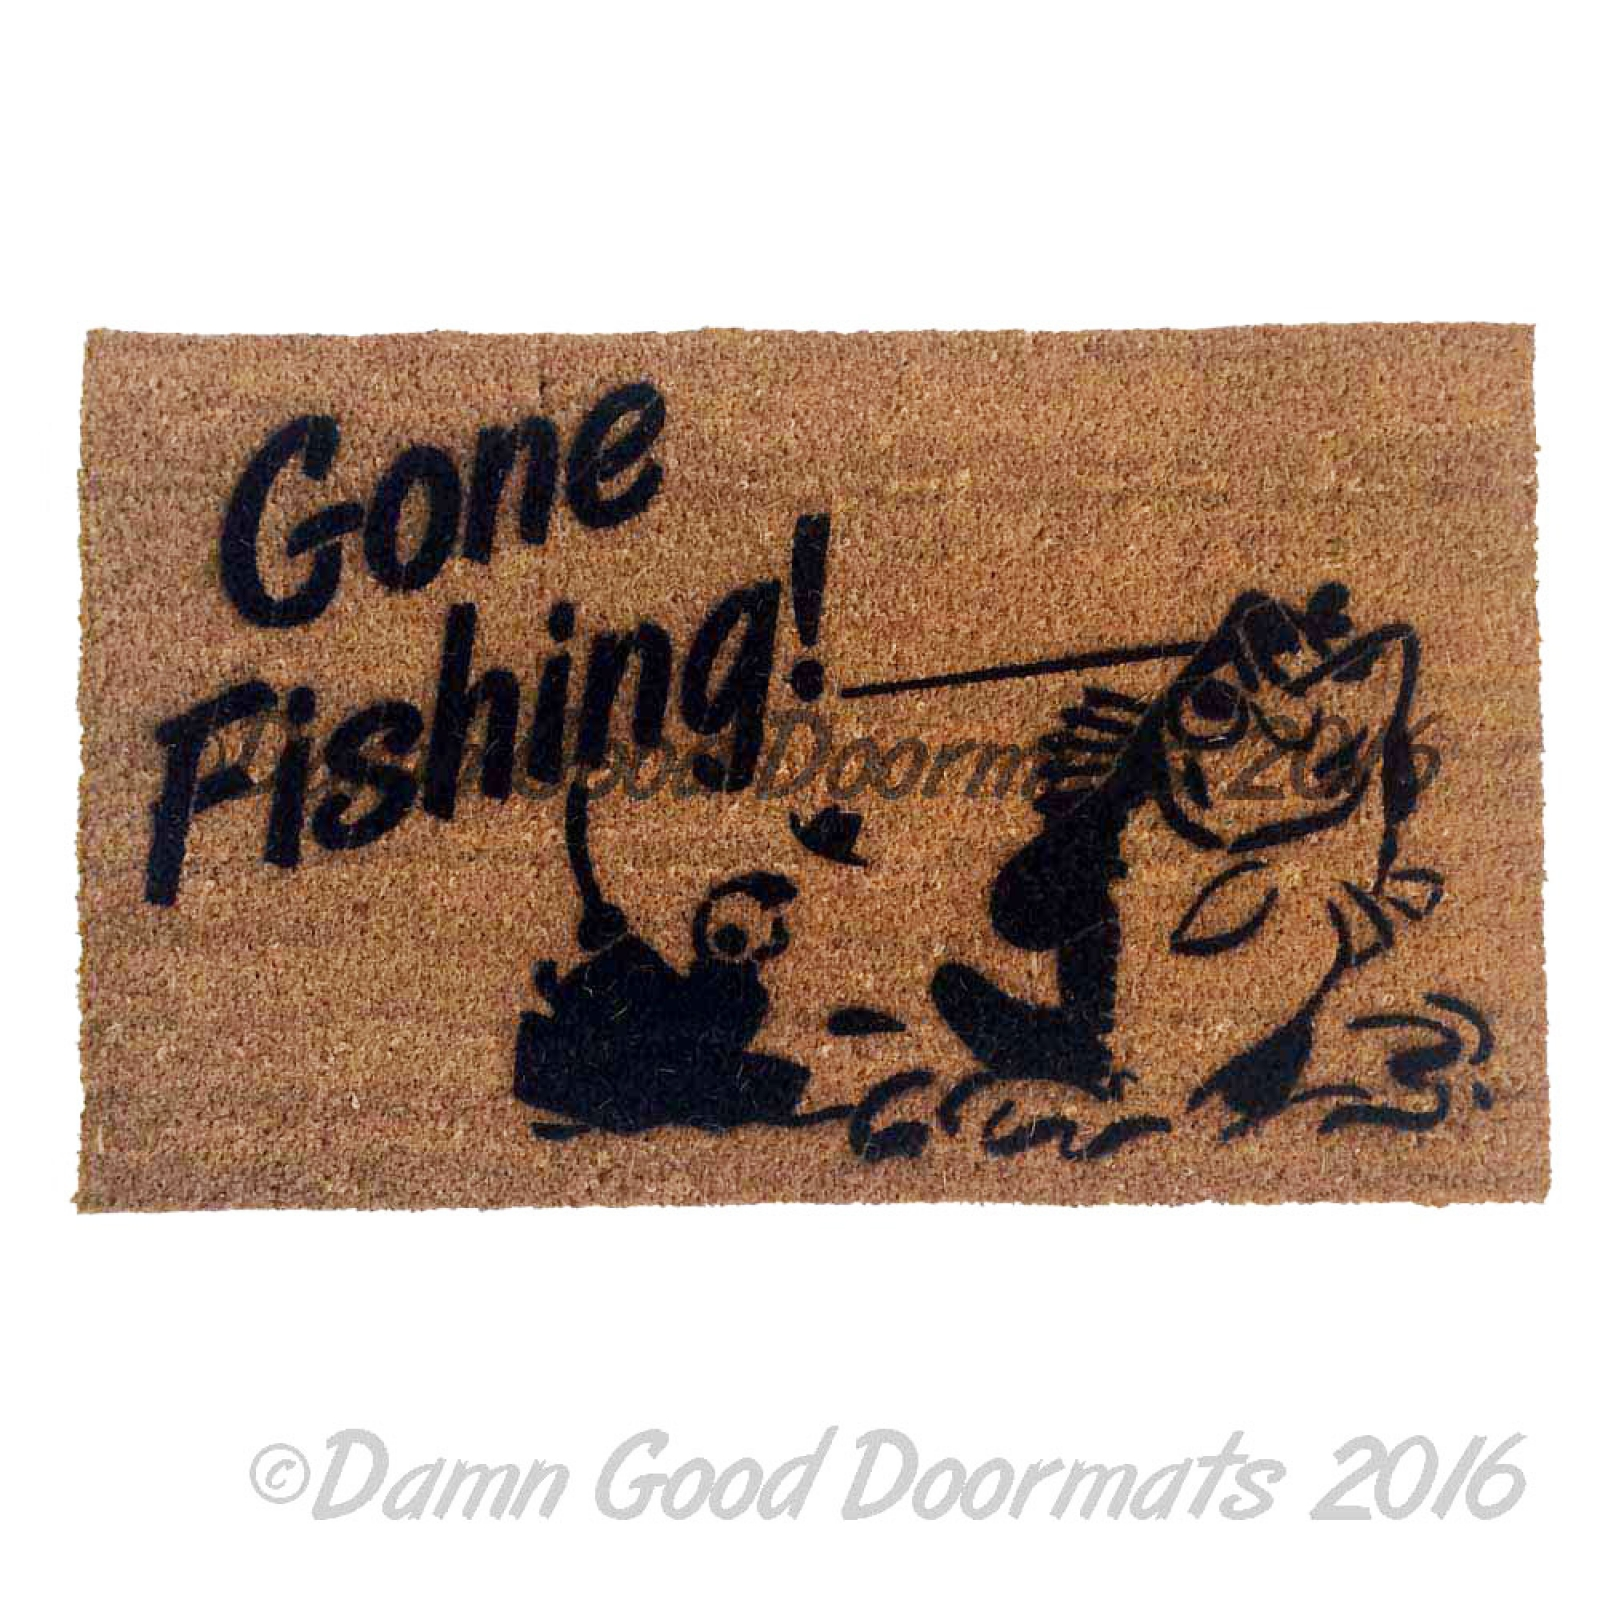 Gone Fishing Doormat Damn Good Doormats